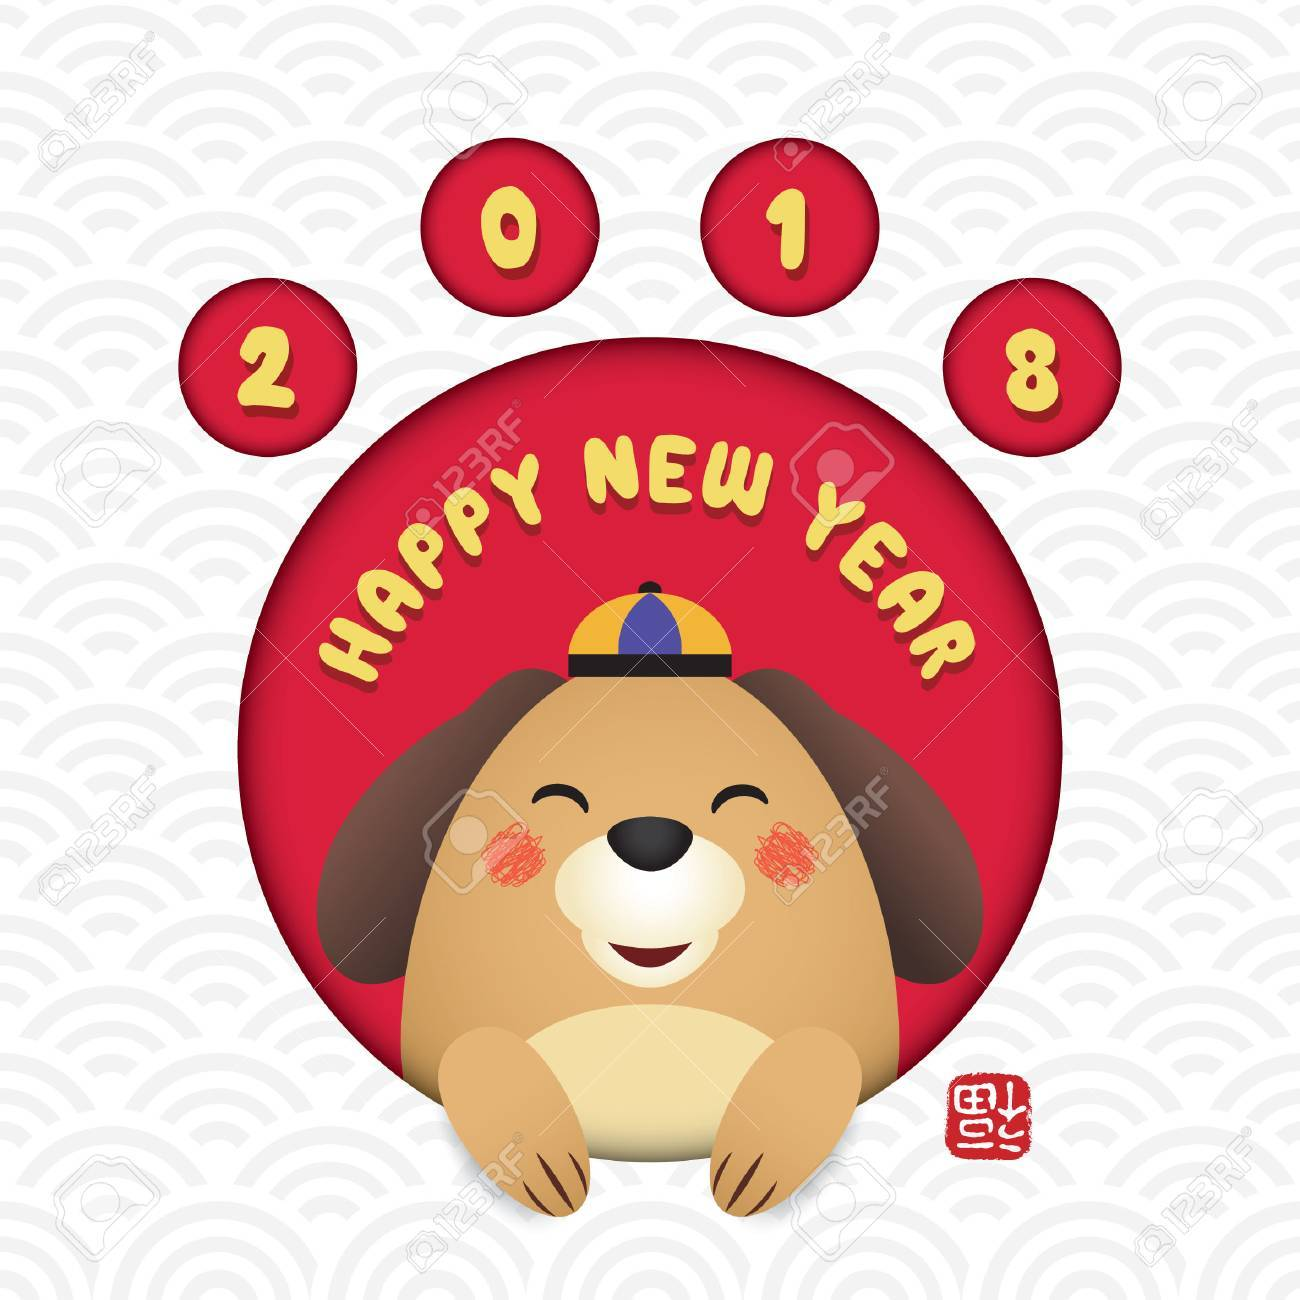 2018 year of dog happy new year greeting card template cute cartoon dog with